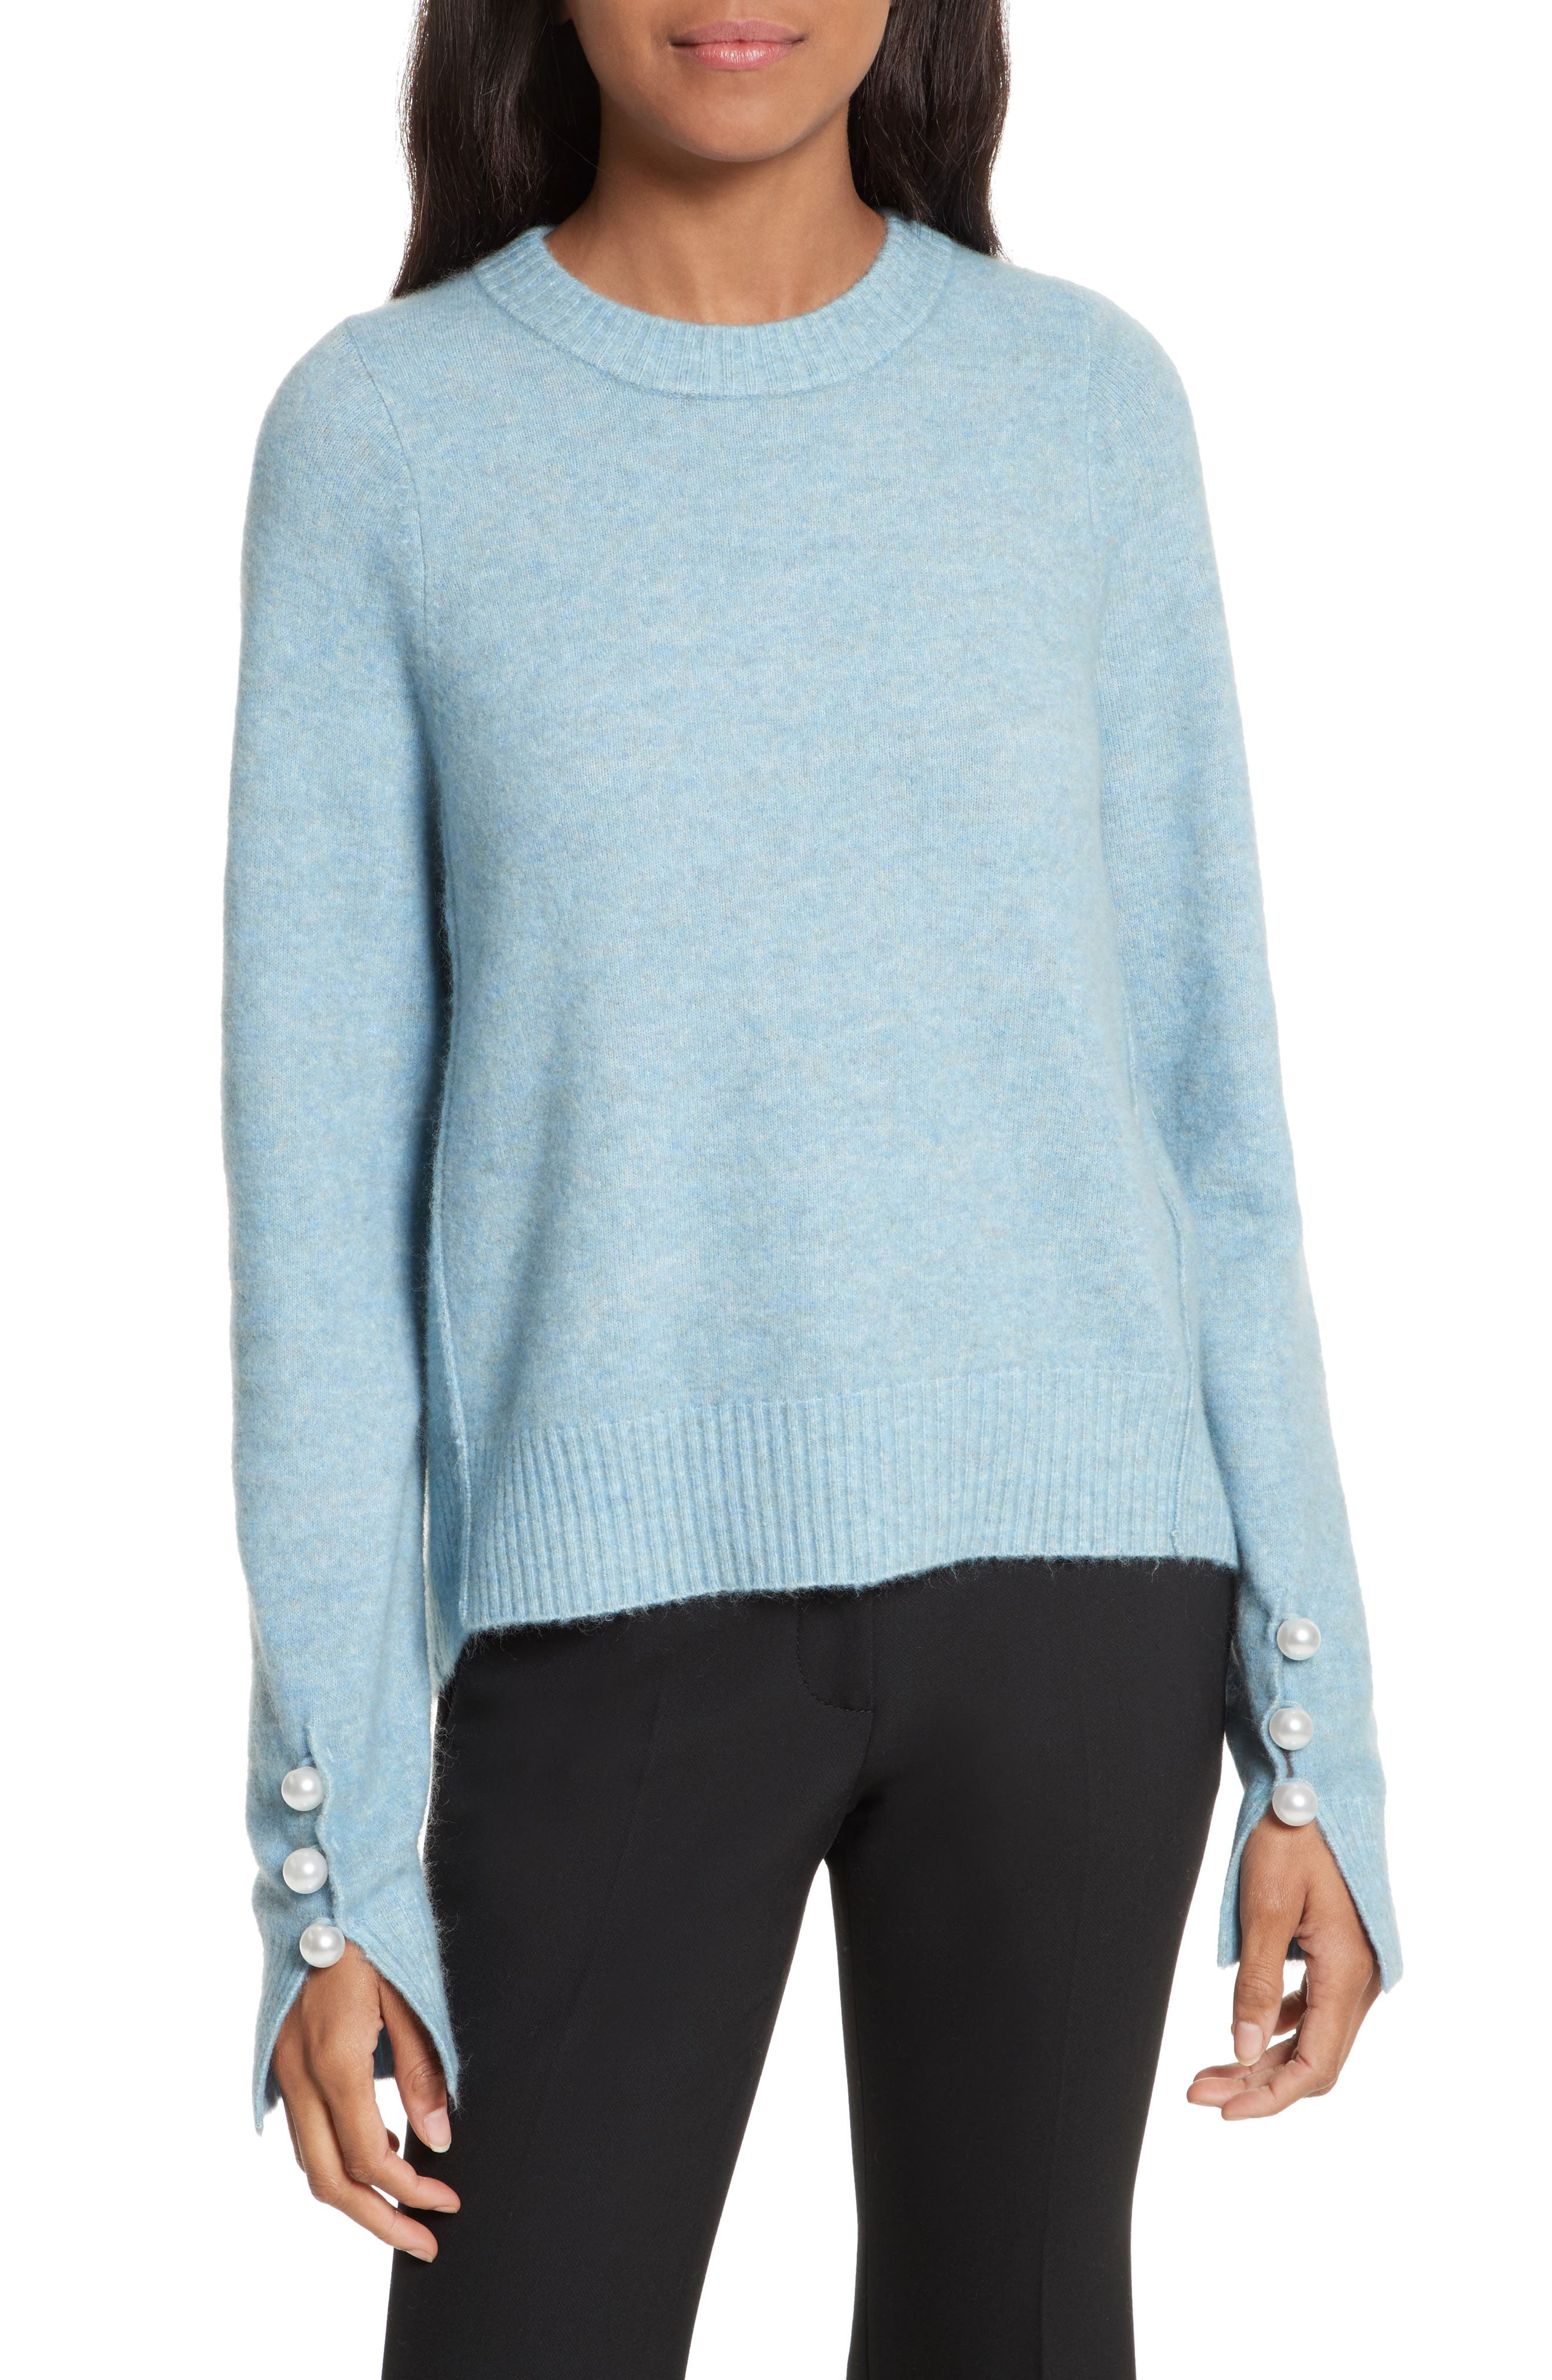 Alternate Image 1 Selected - 3.1 Phillip Lim Faux Pearl Cuff Knit Pullover